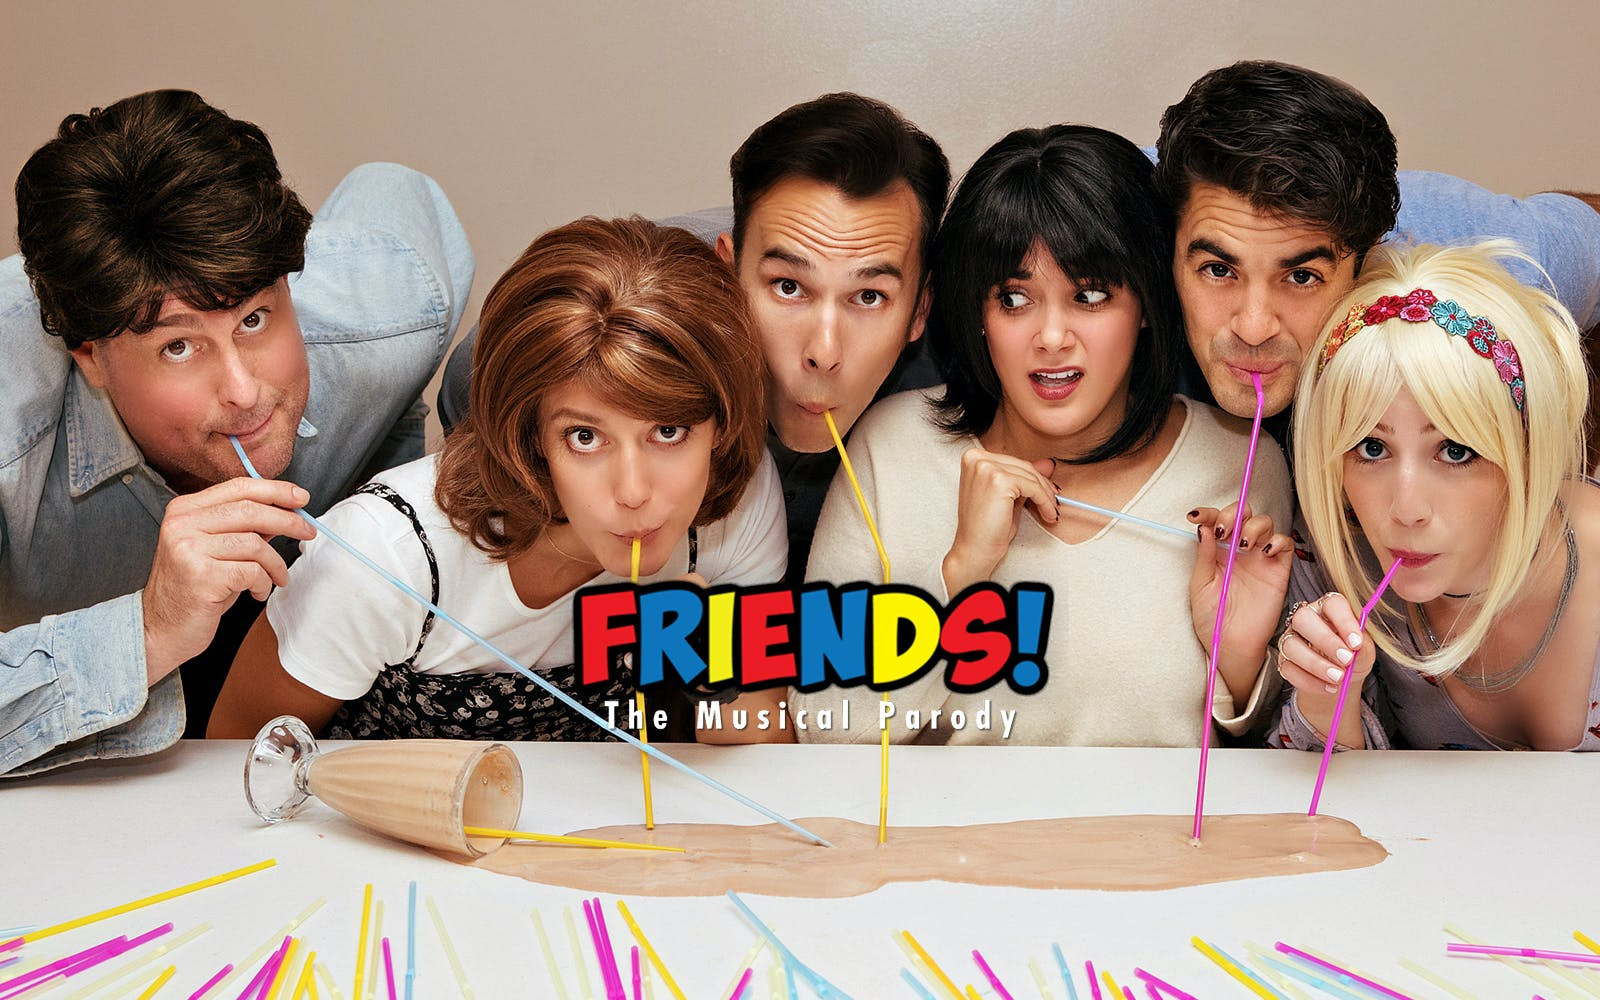 friends! the musical parody-1